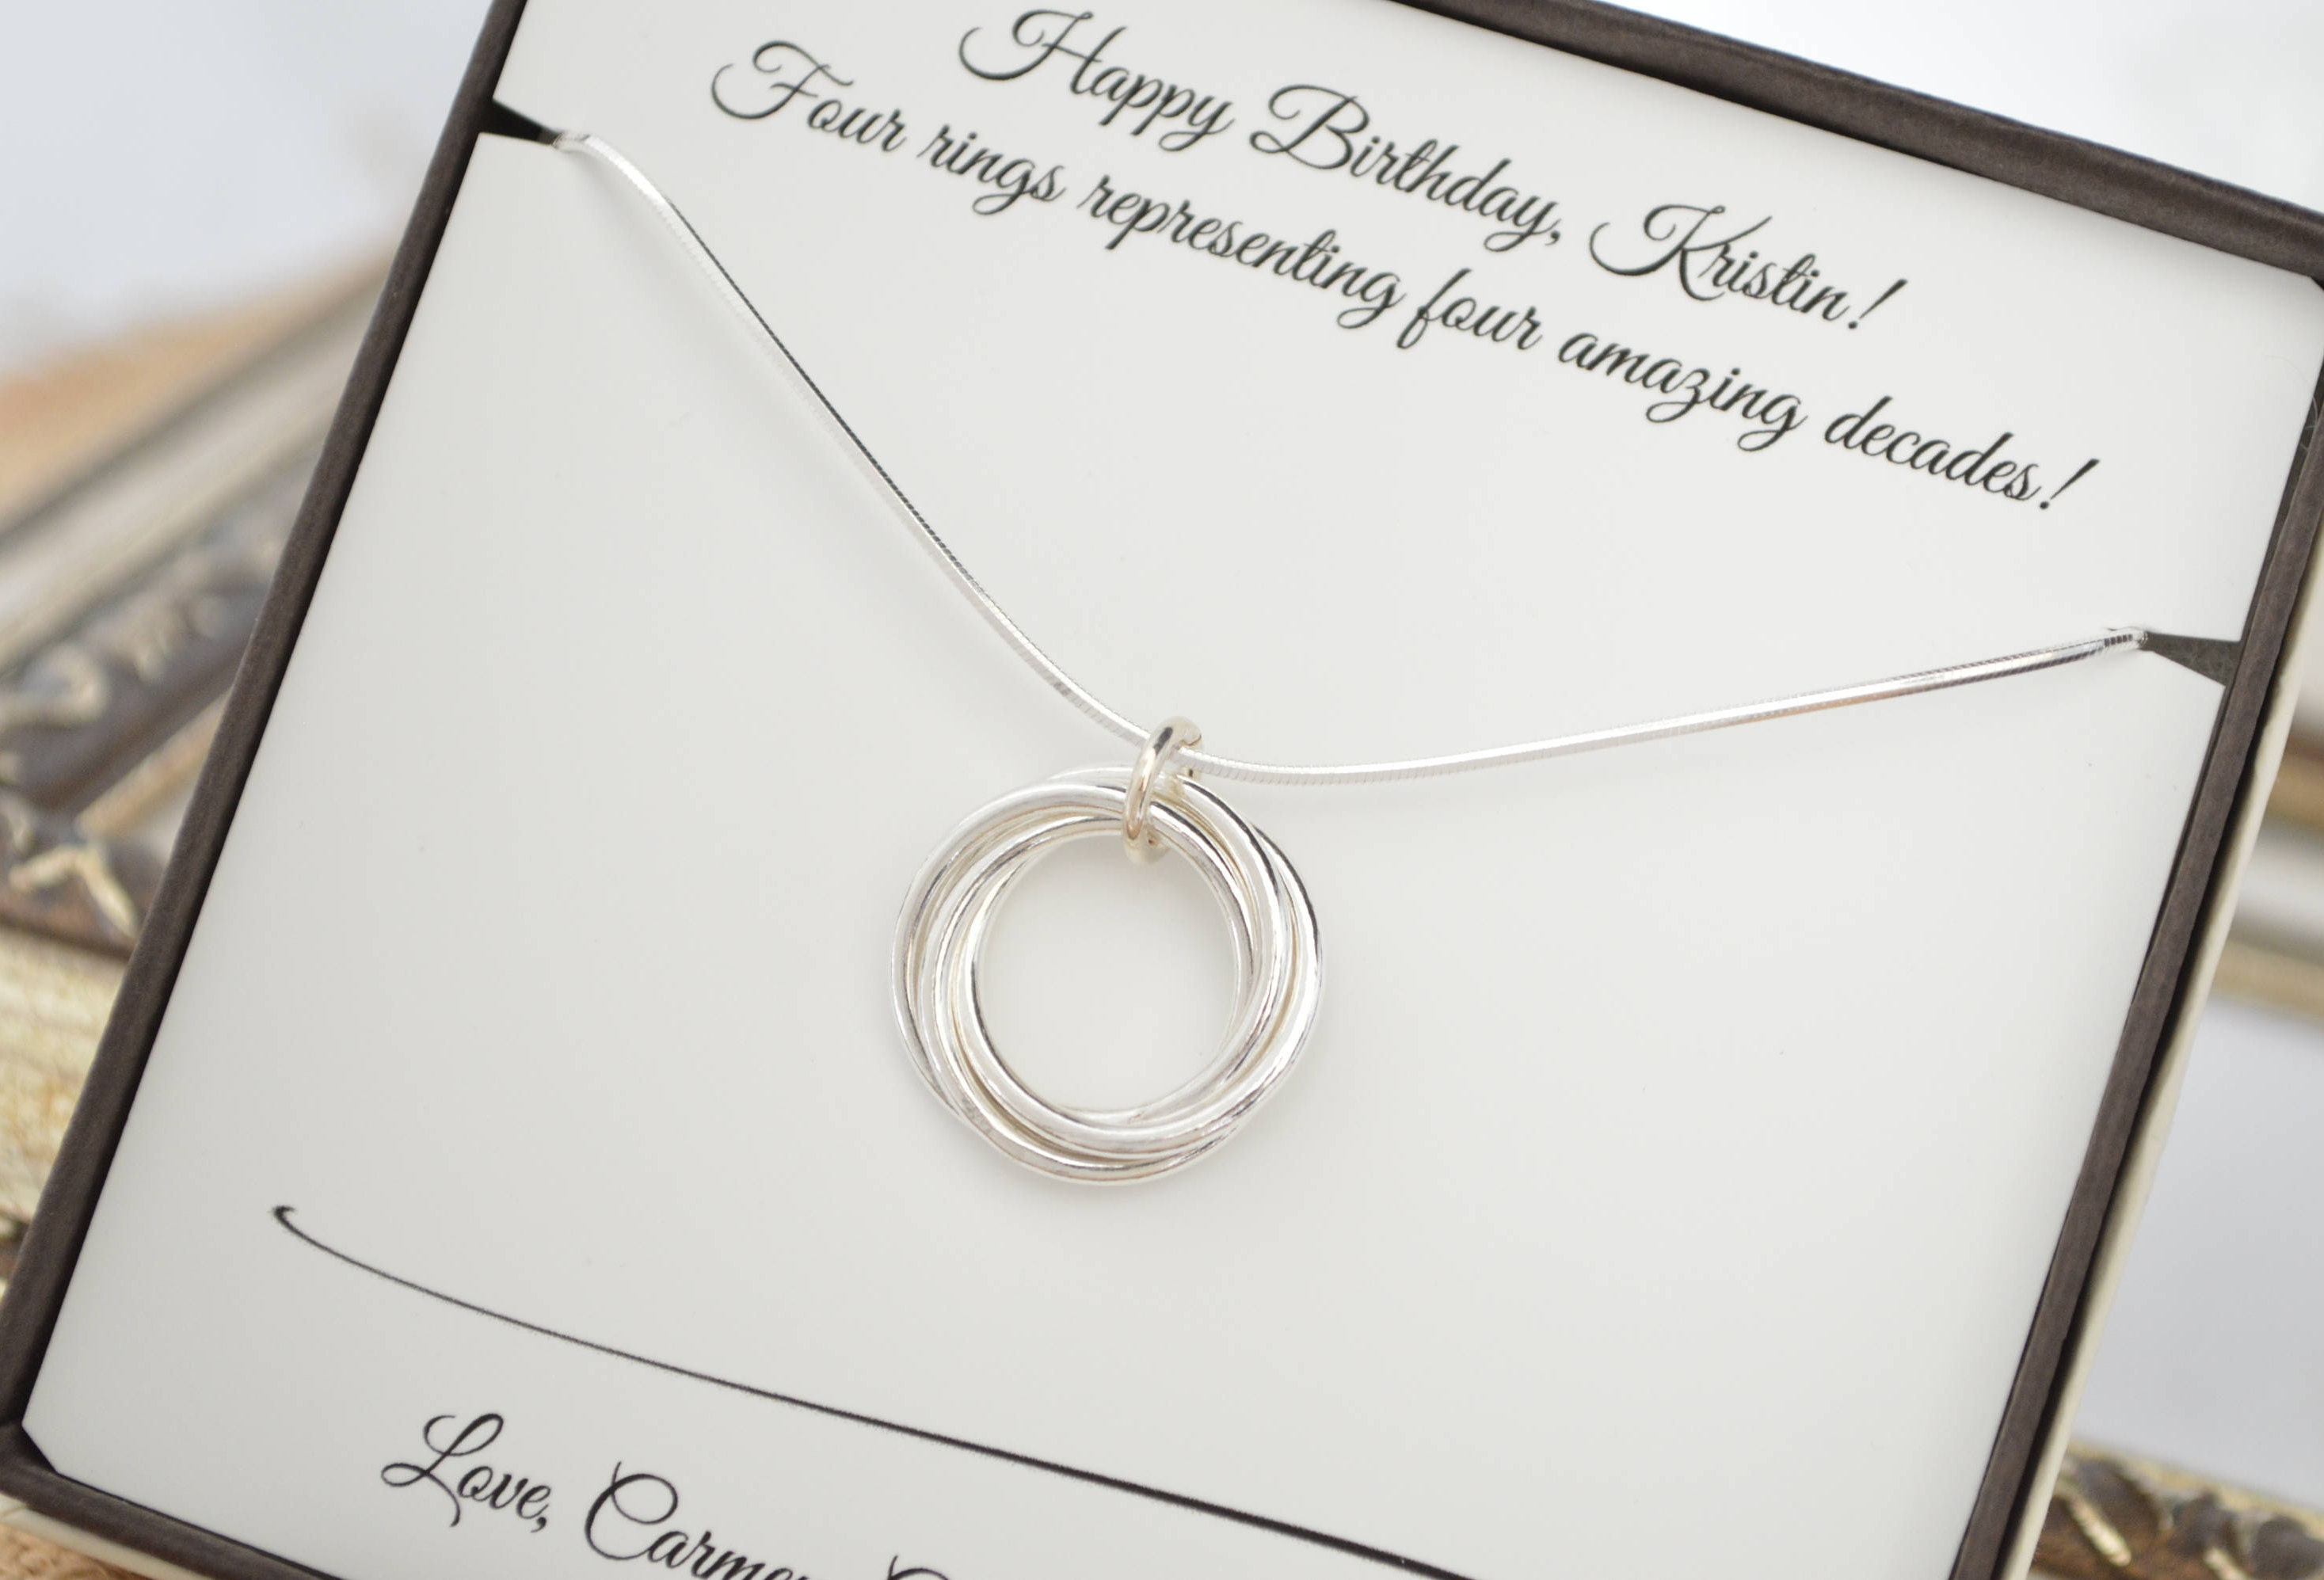 40th Birthday Gift For Her 4 Best Friend Rings Necklace Gallery Photo